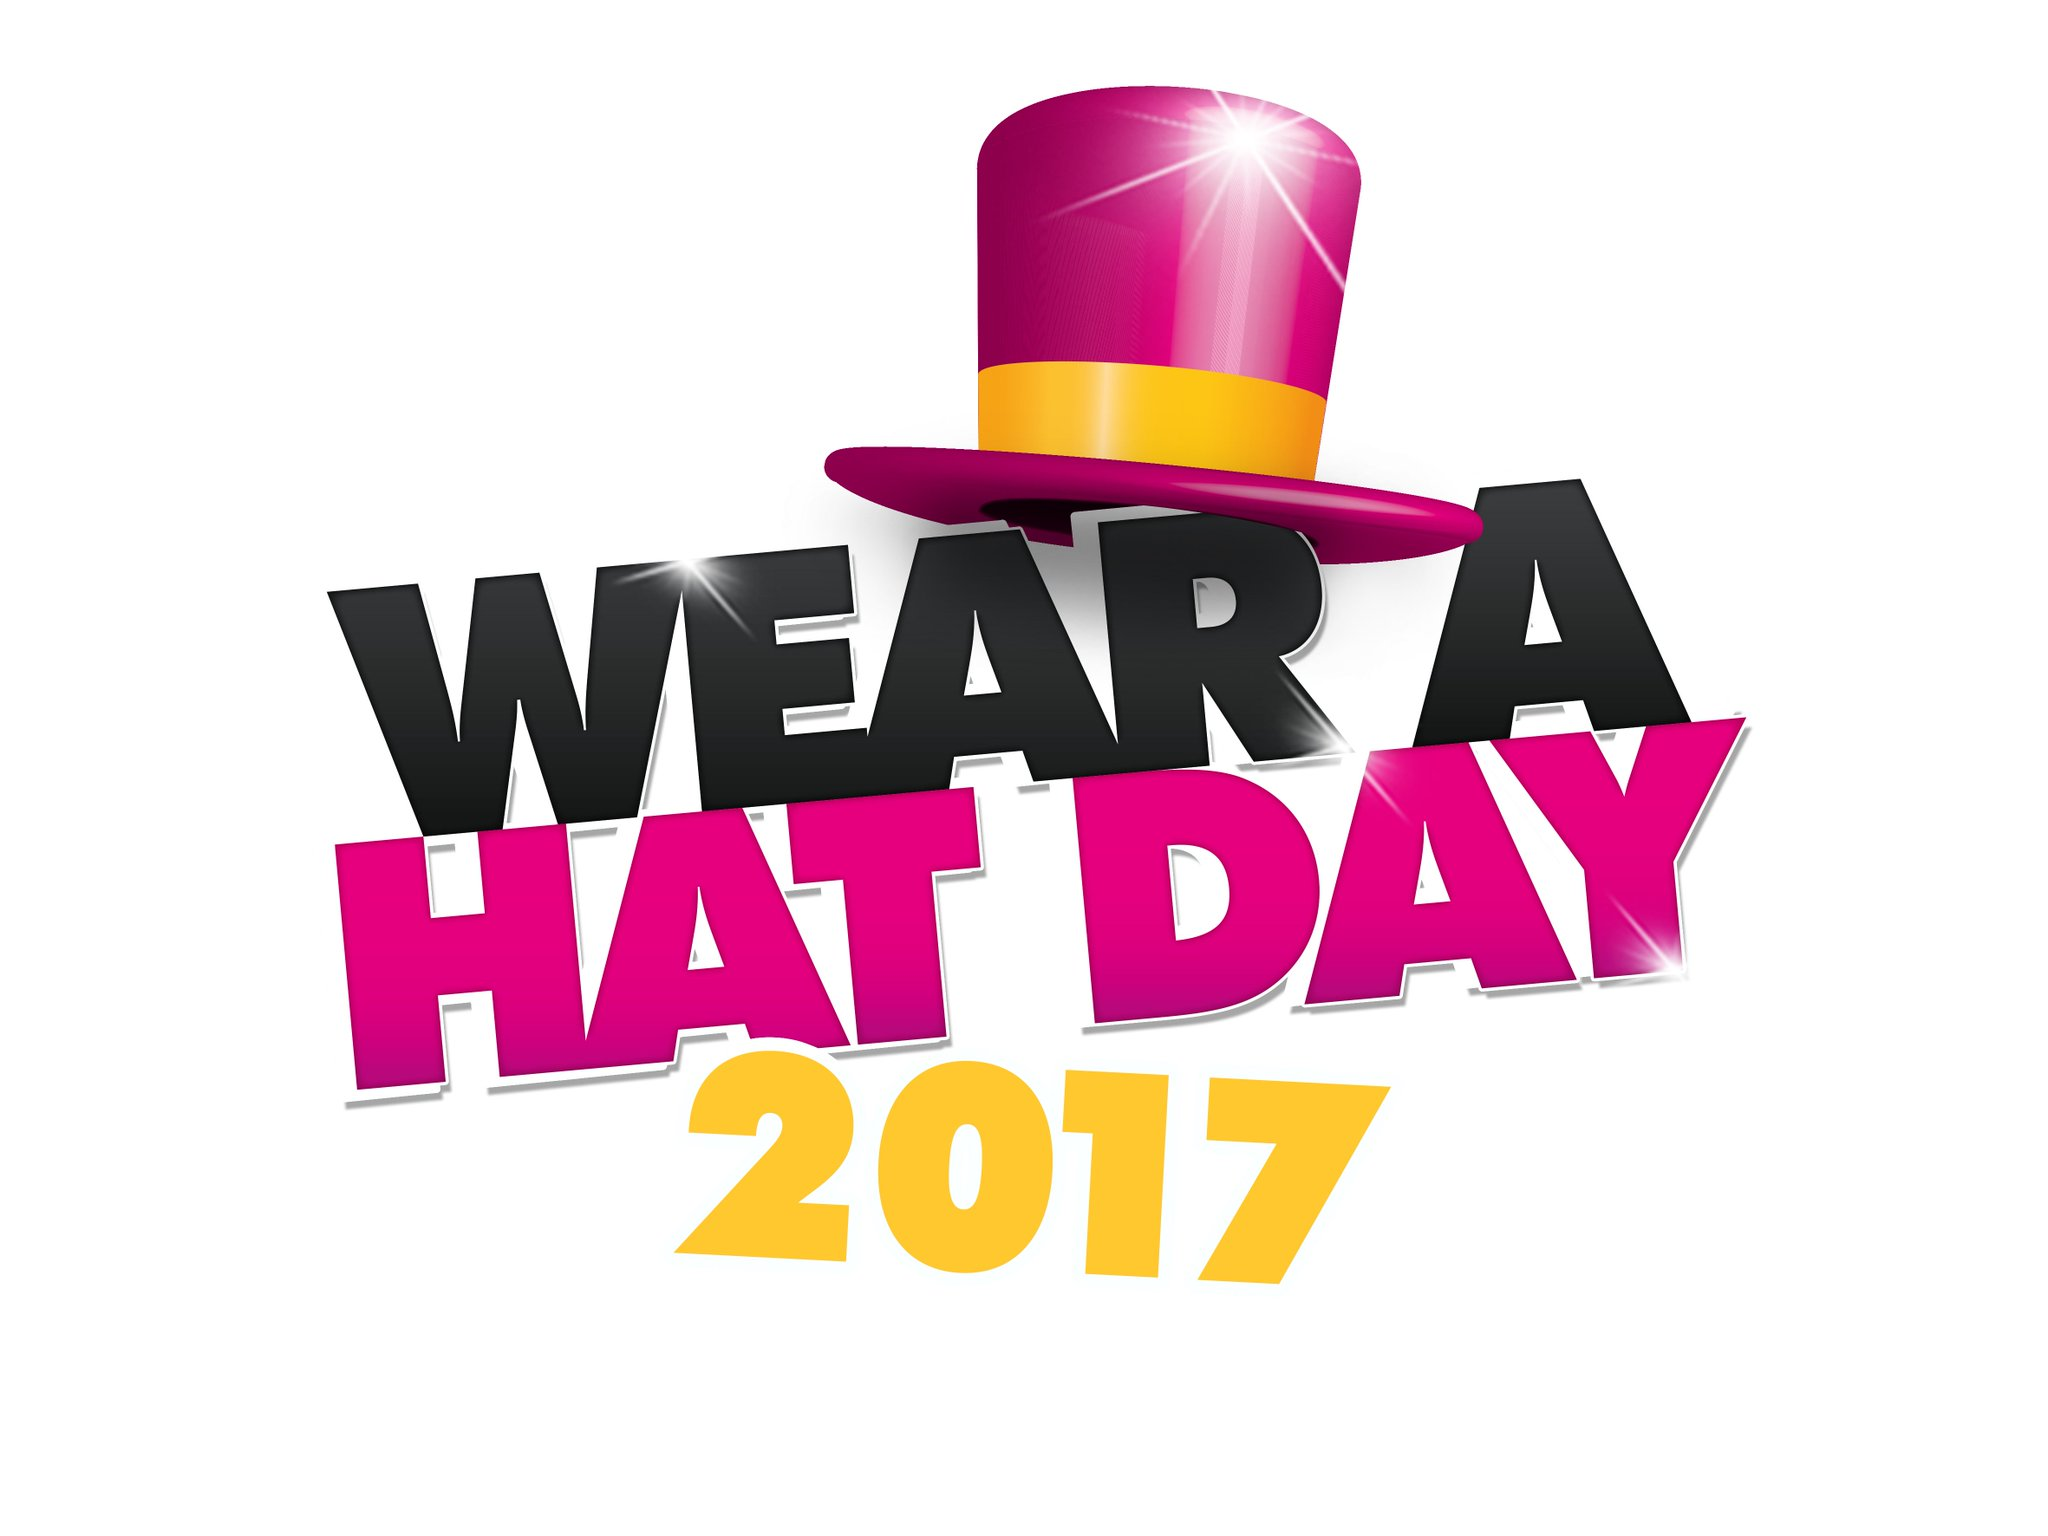 Today is #WearAHatDay! Please RT this to show your support! Post your #Hattastic selfie & text HAT to 70660 to donate £5. https://t.co/TiQ3dKprhJ